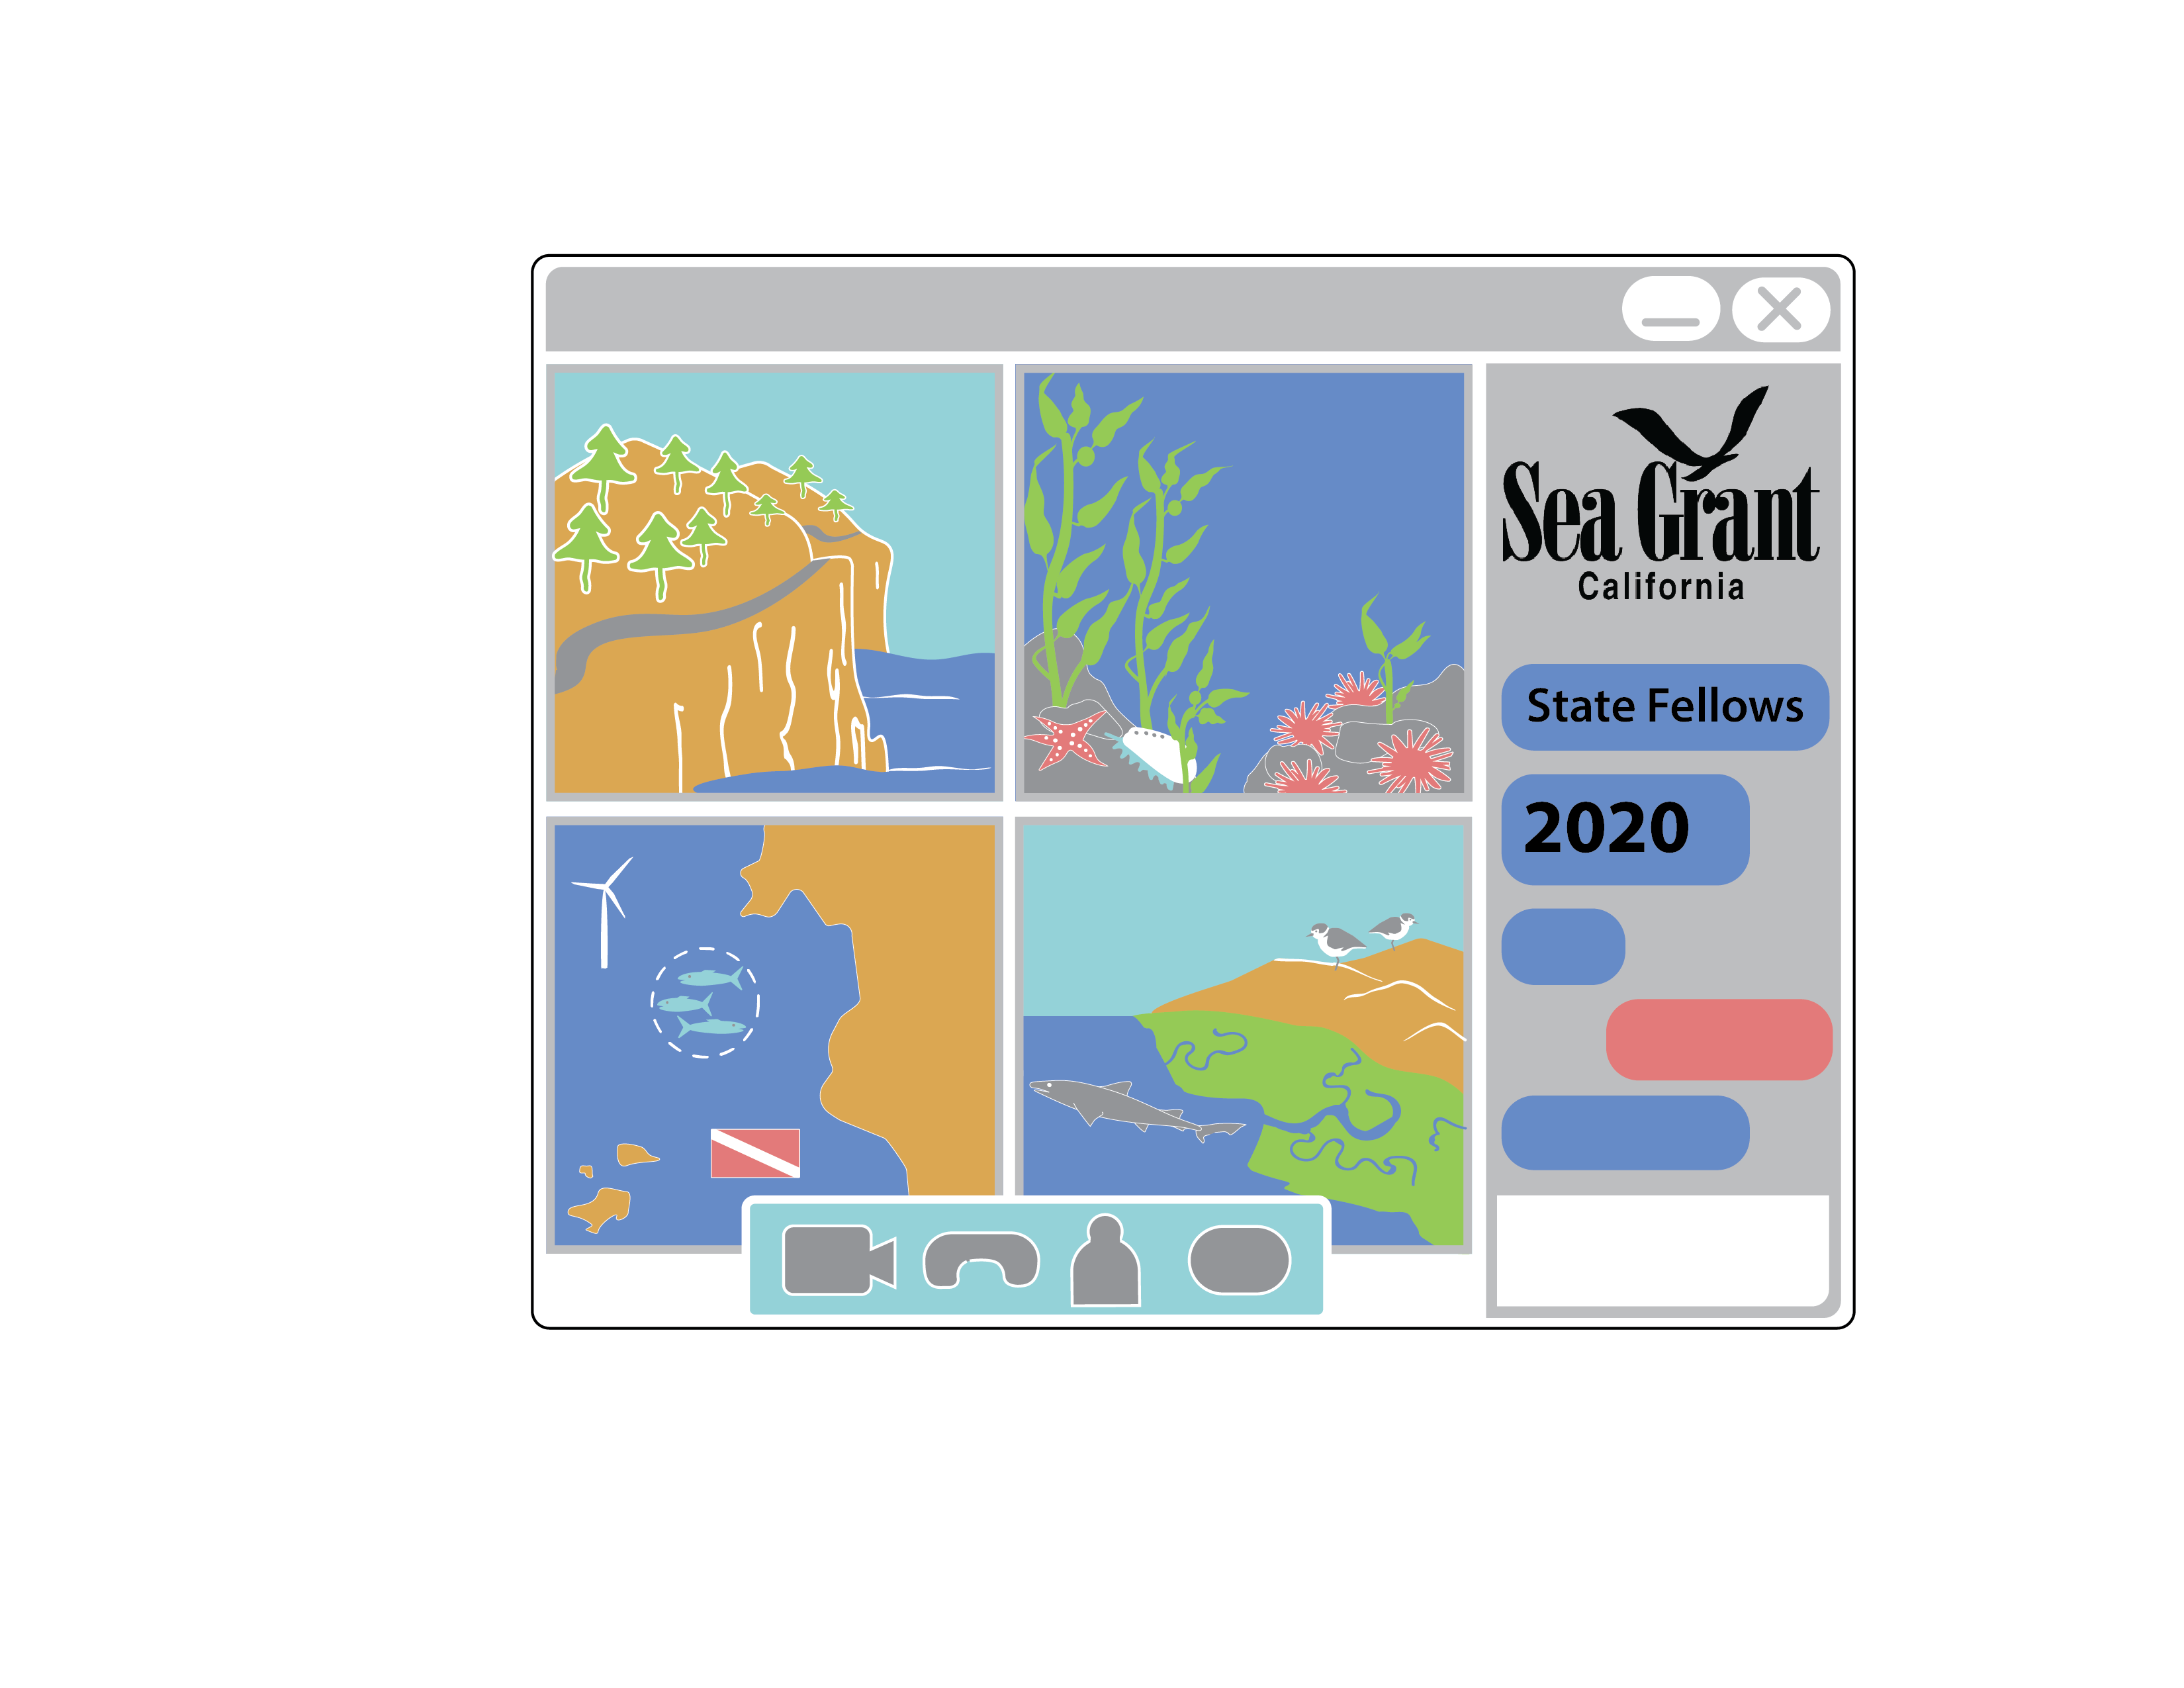 Graphic image of a zoom screen, with representations of coastal images in each window